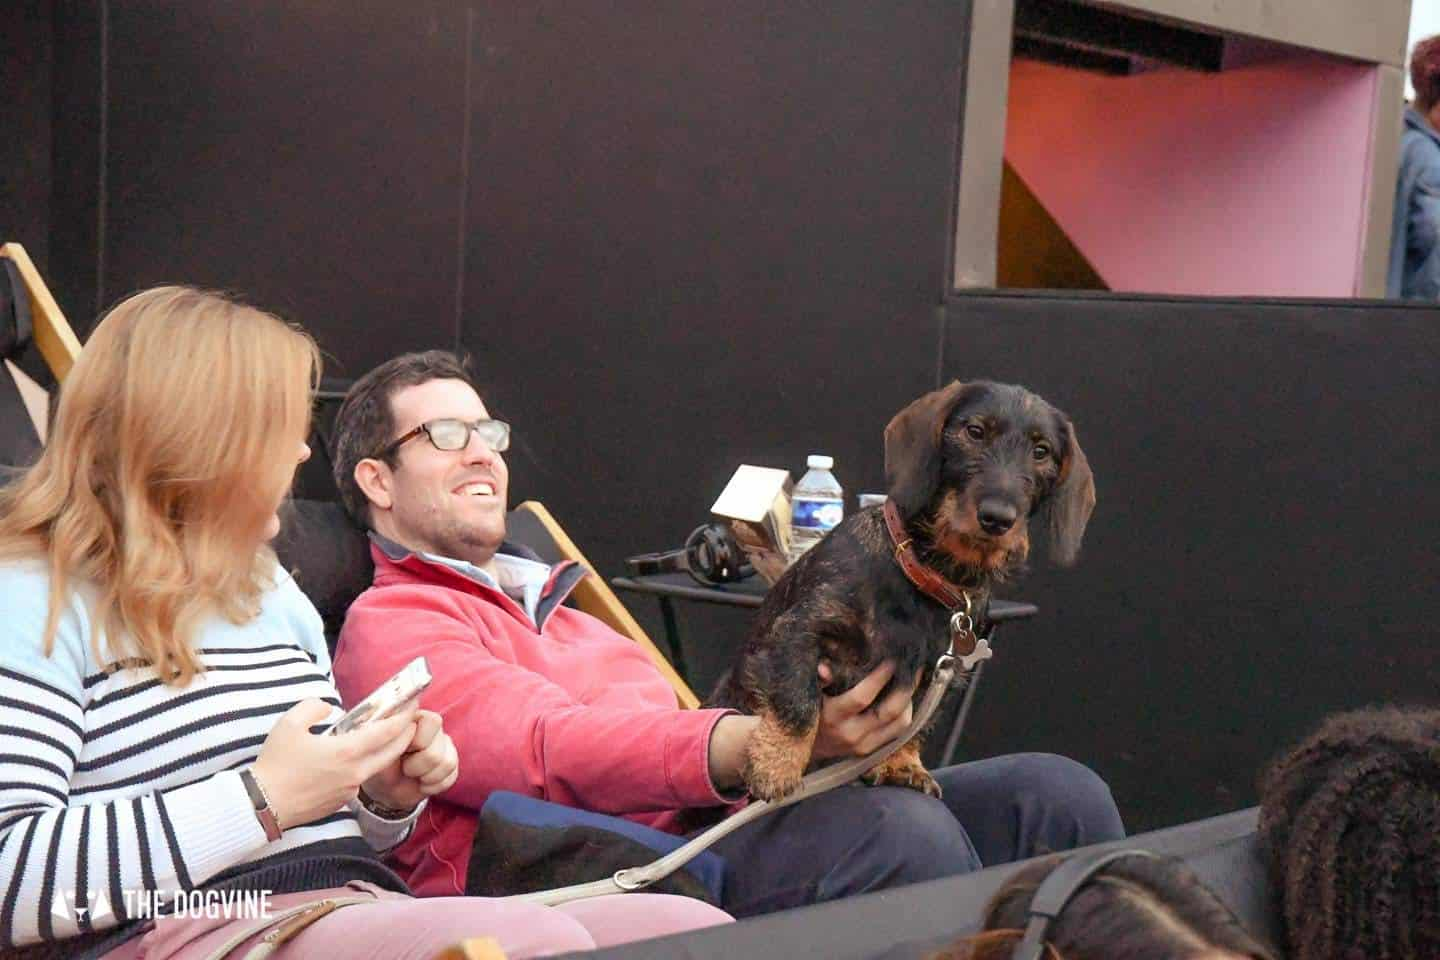 Spectacular Movie Moments at the Dog-friendly Rooftop Film Club 49